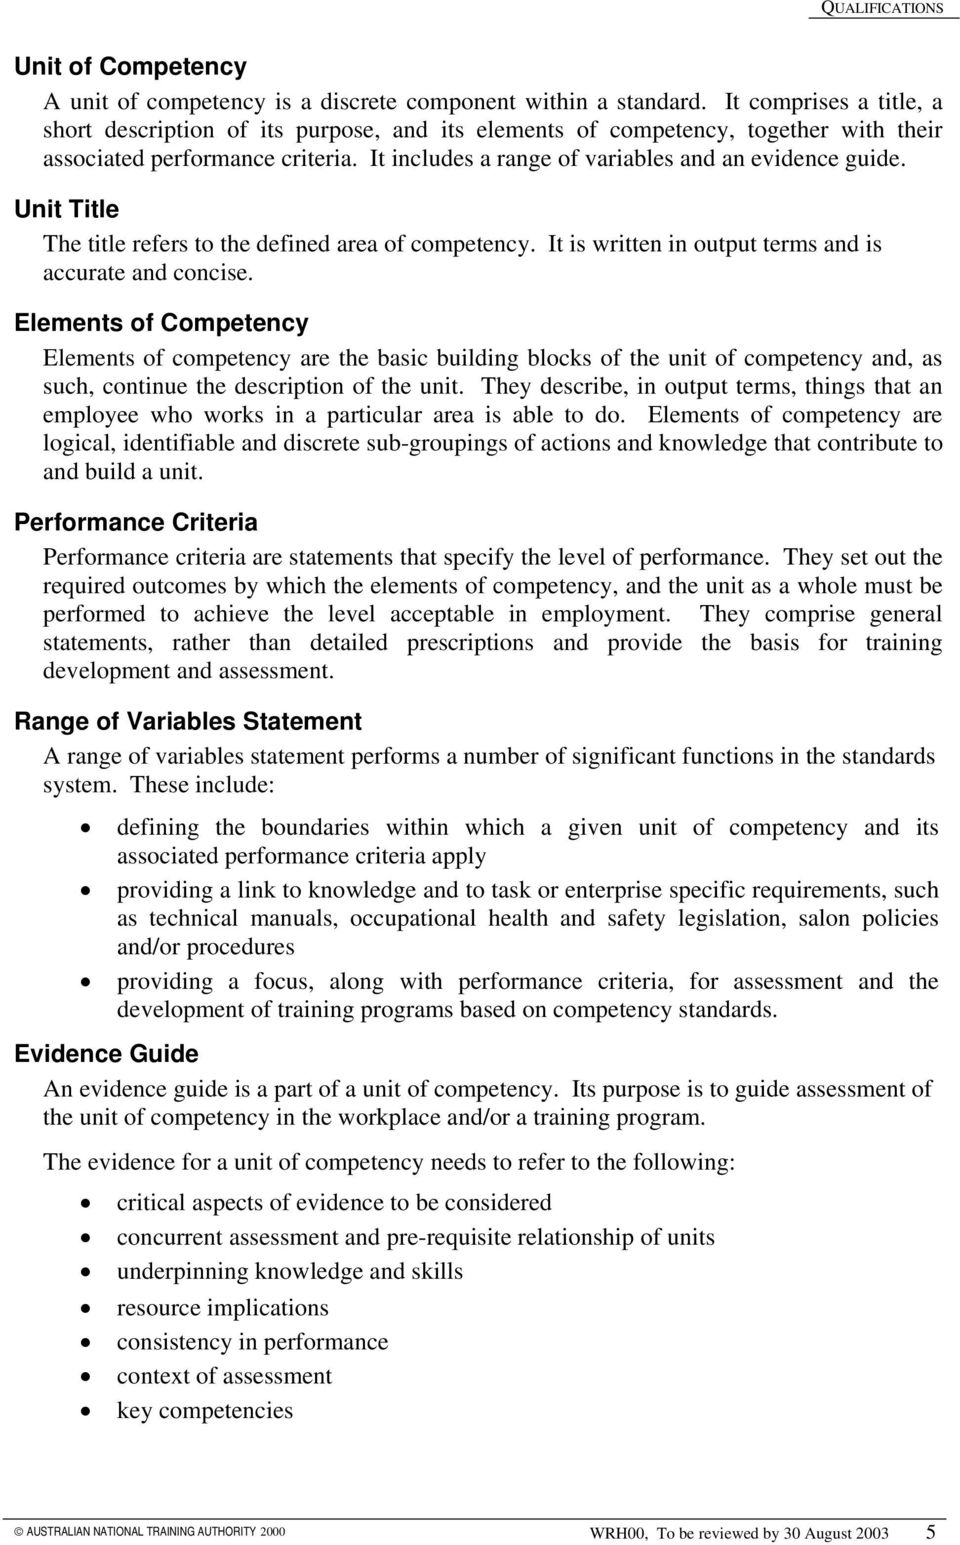 Unit Title The title refers to the defined area of competency. It is written in output terms and is accurate and concise.